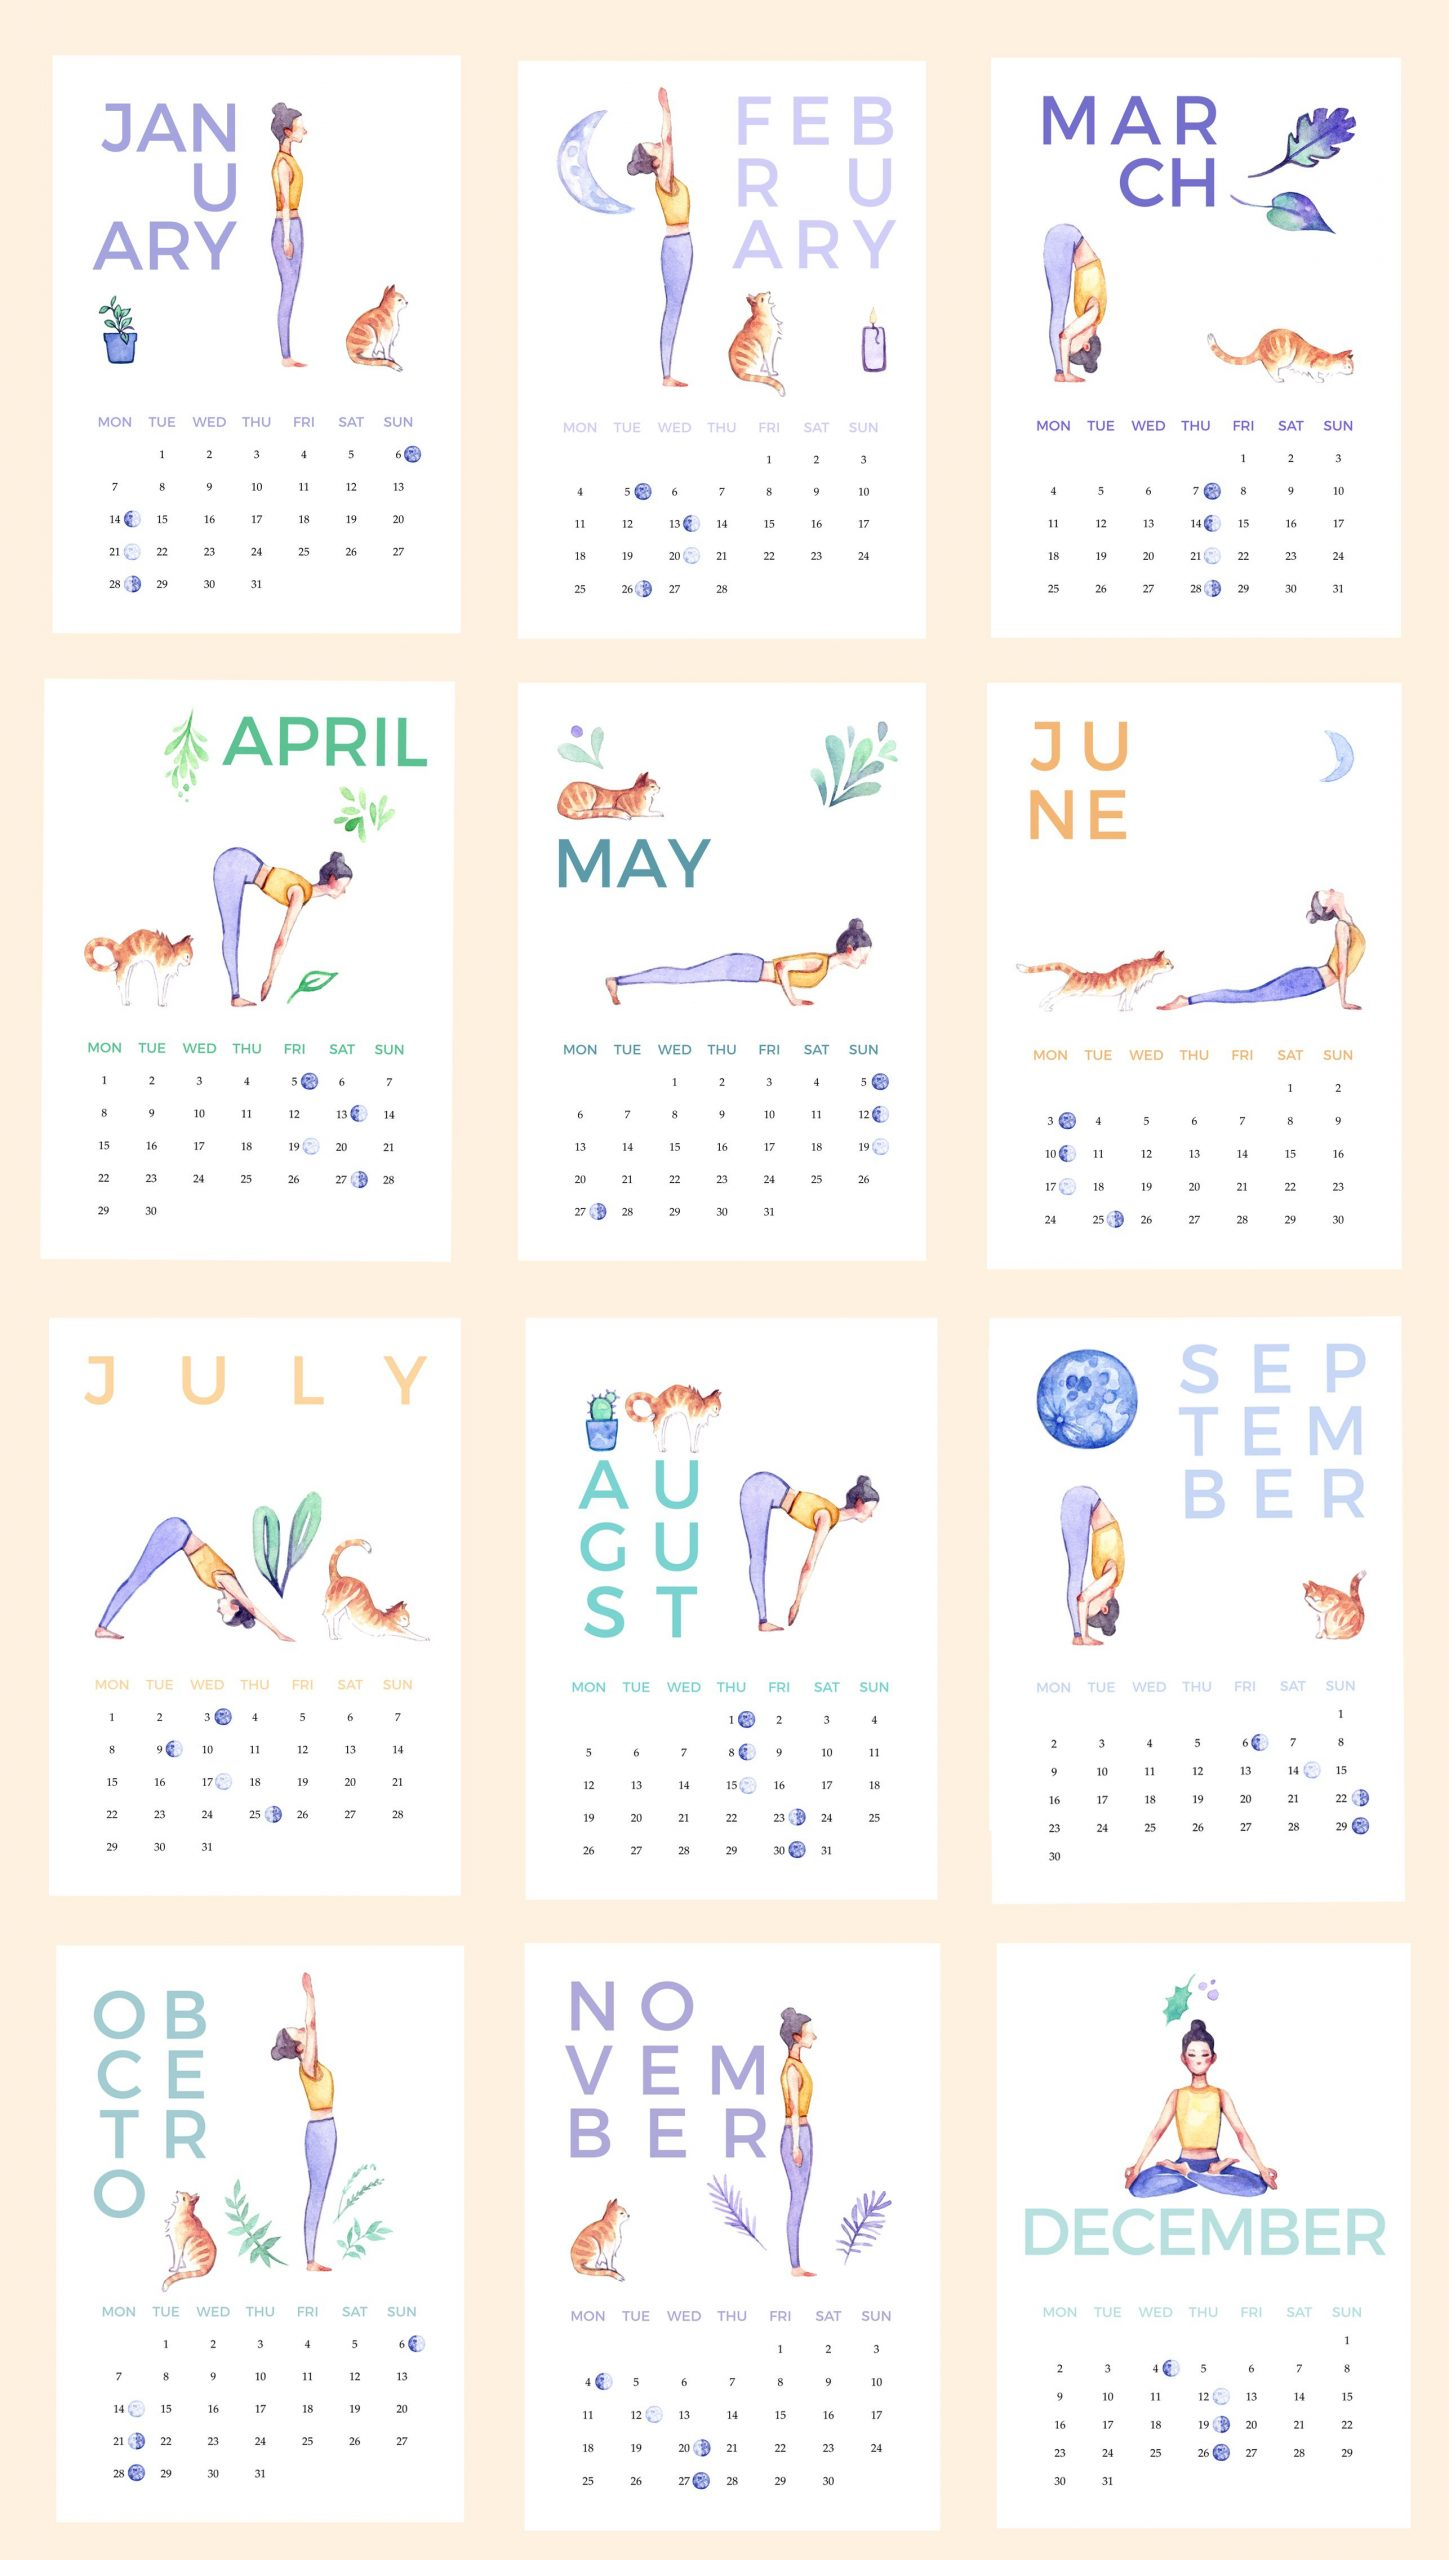 A Printable Illustrated Yoga Calendar For 2019 - With A Cat